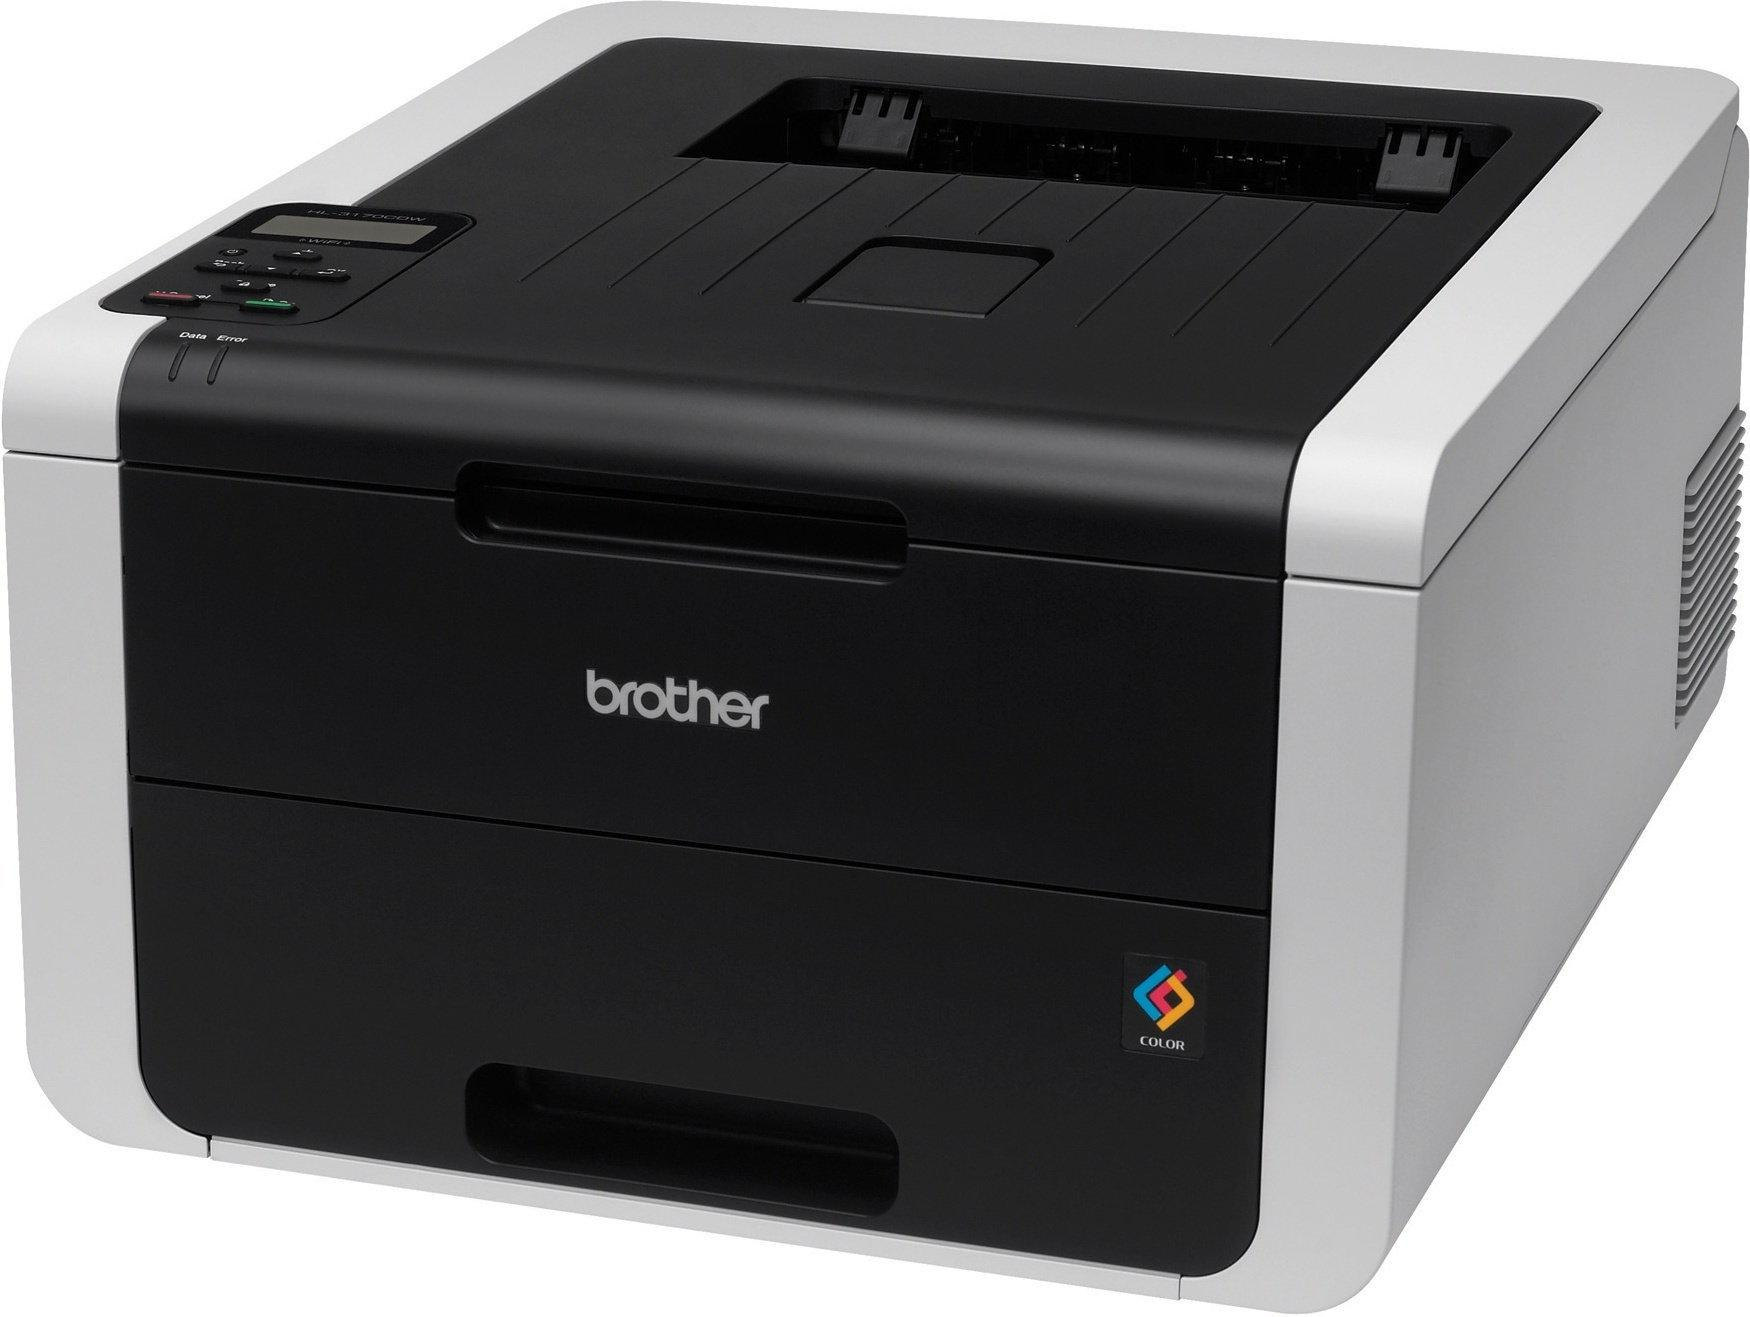 Brother HL-3170DW